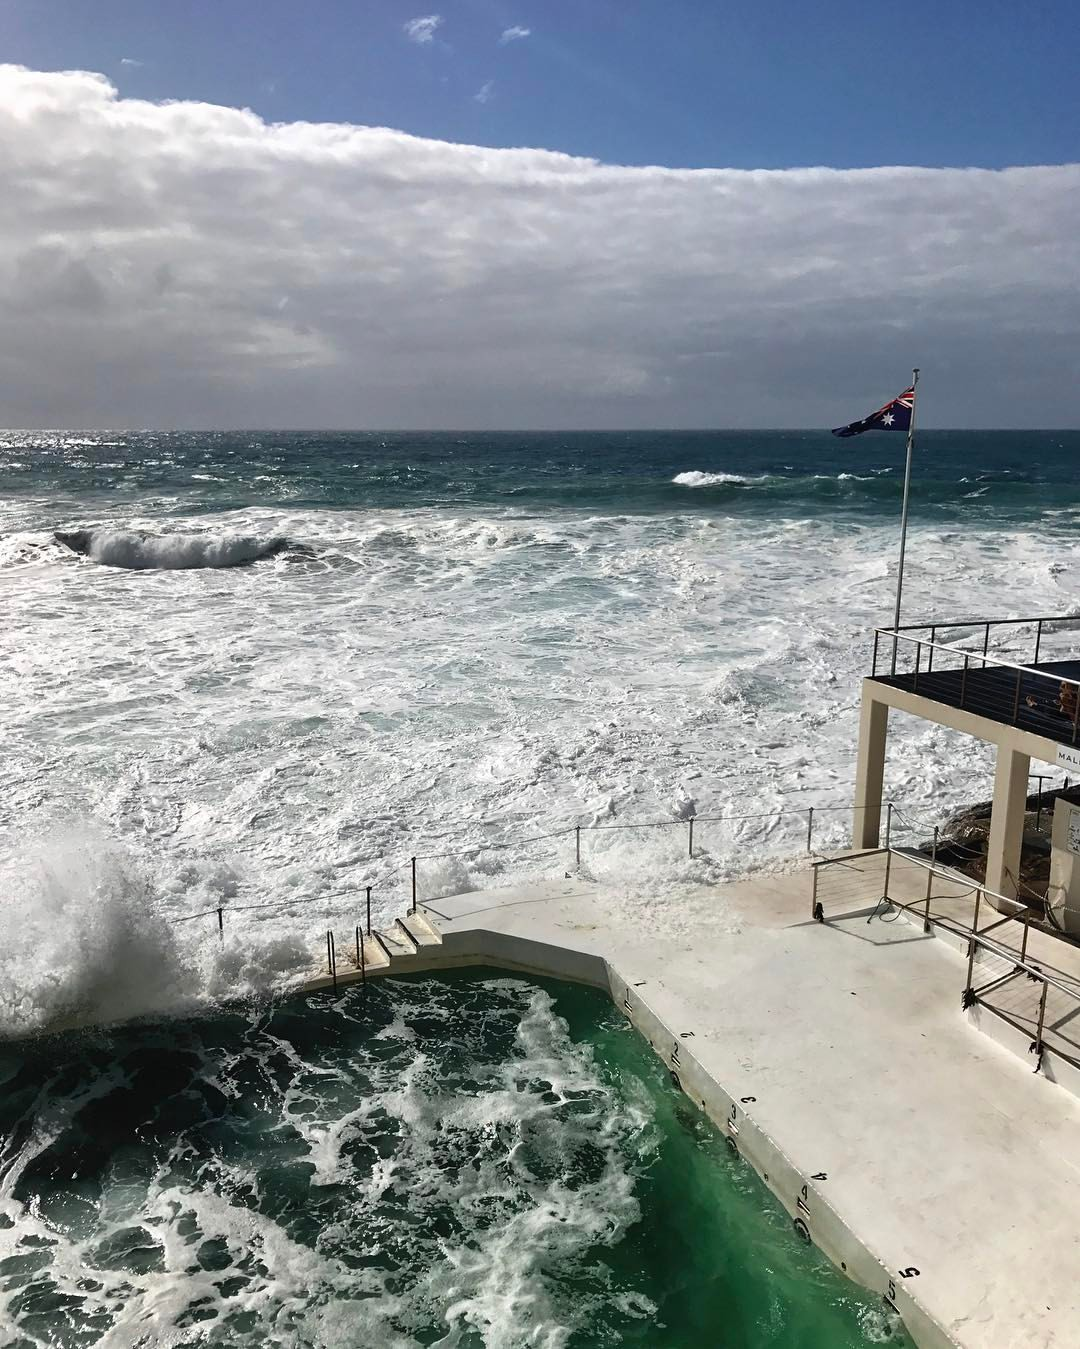 Sea foam over the ocean in April 2017